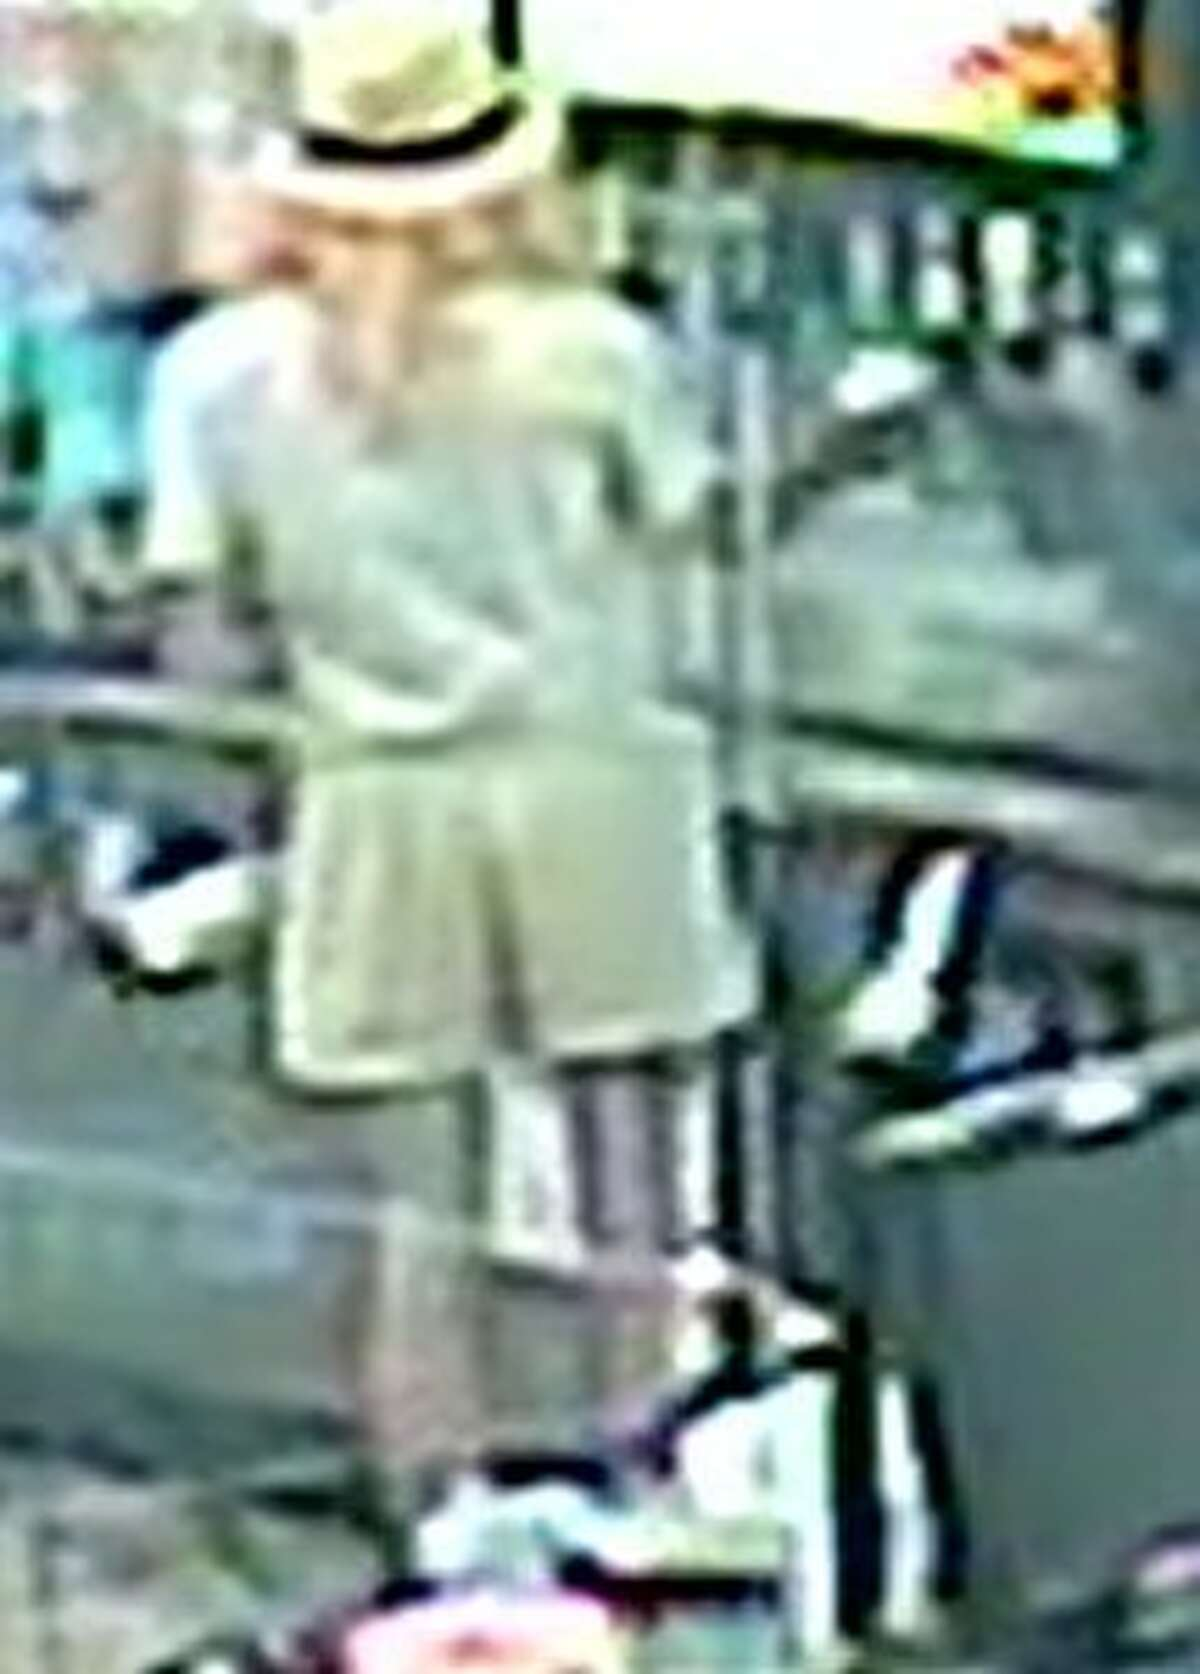 The Hays County Sheriff is asking the public's help in identifying a woman who is possibly in trouble in the Wimberley area.